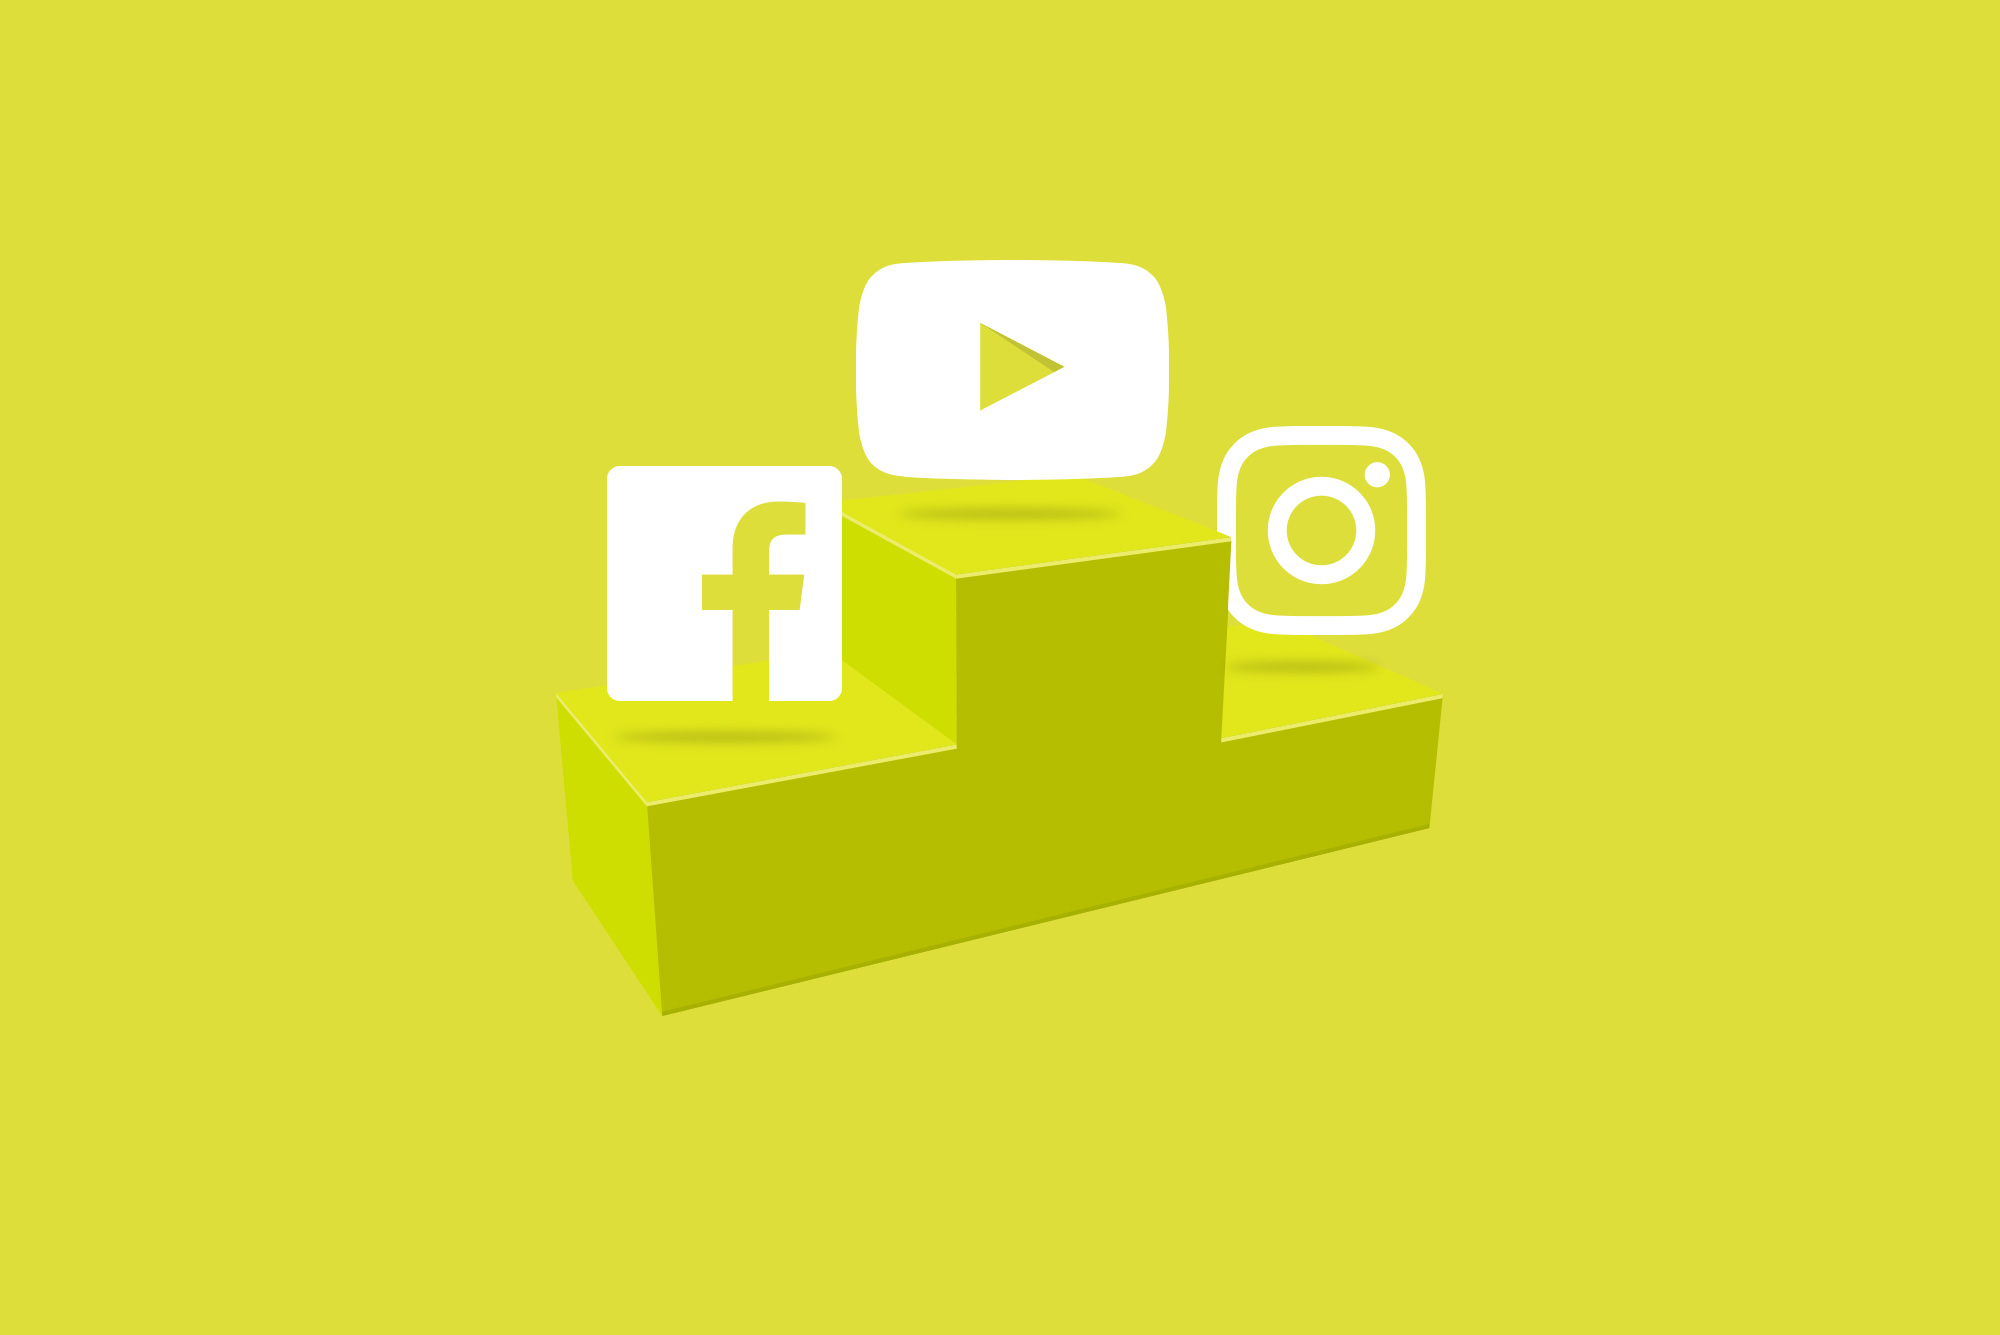 Facebook, YouTube and Instagram logos on a yellow podium